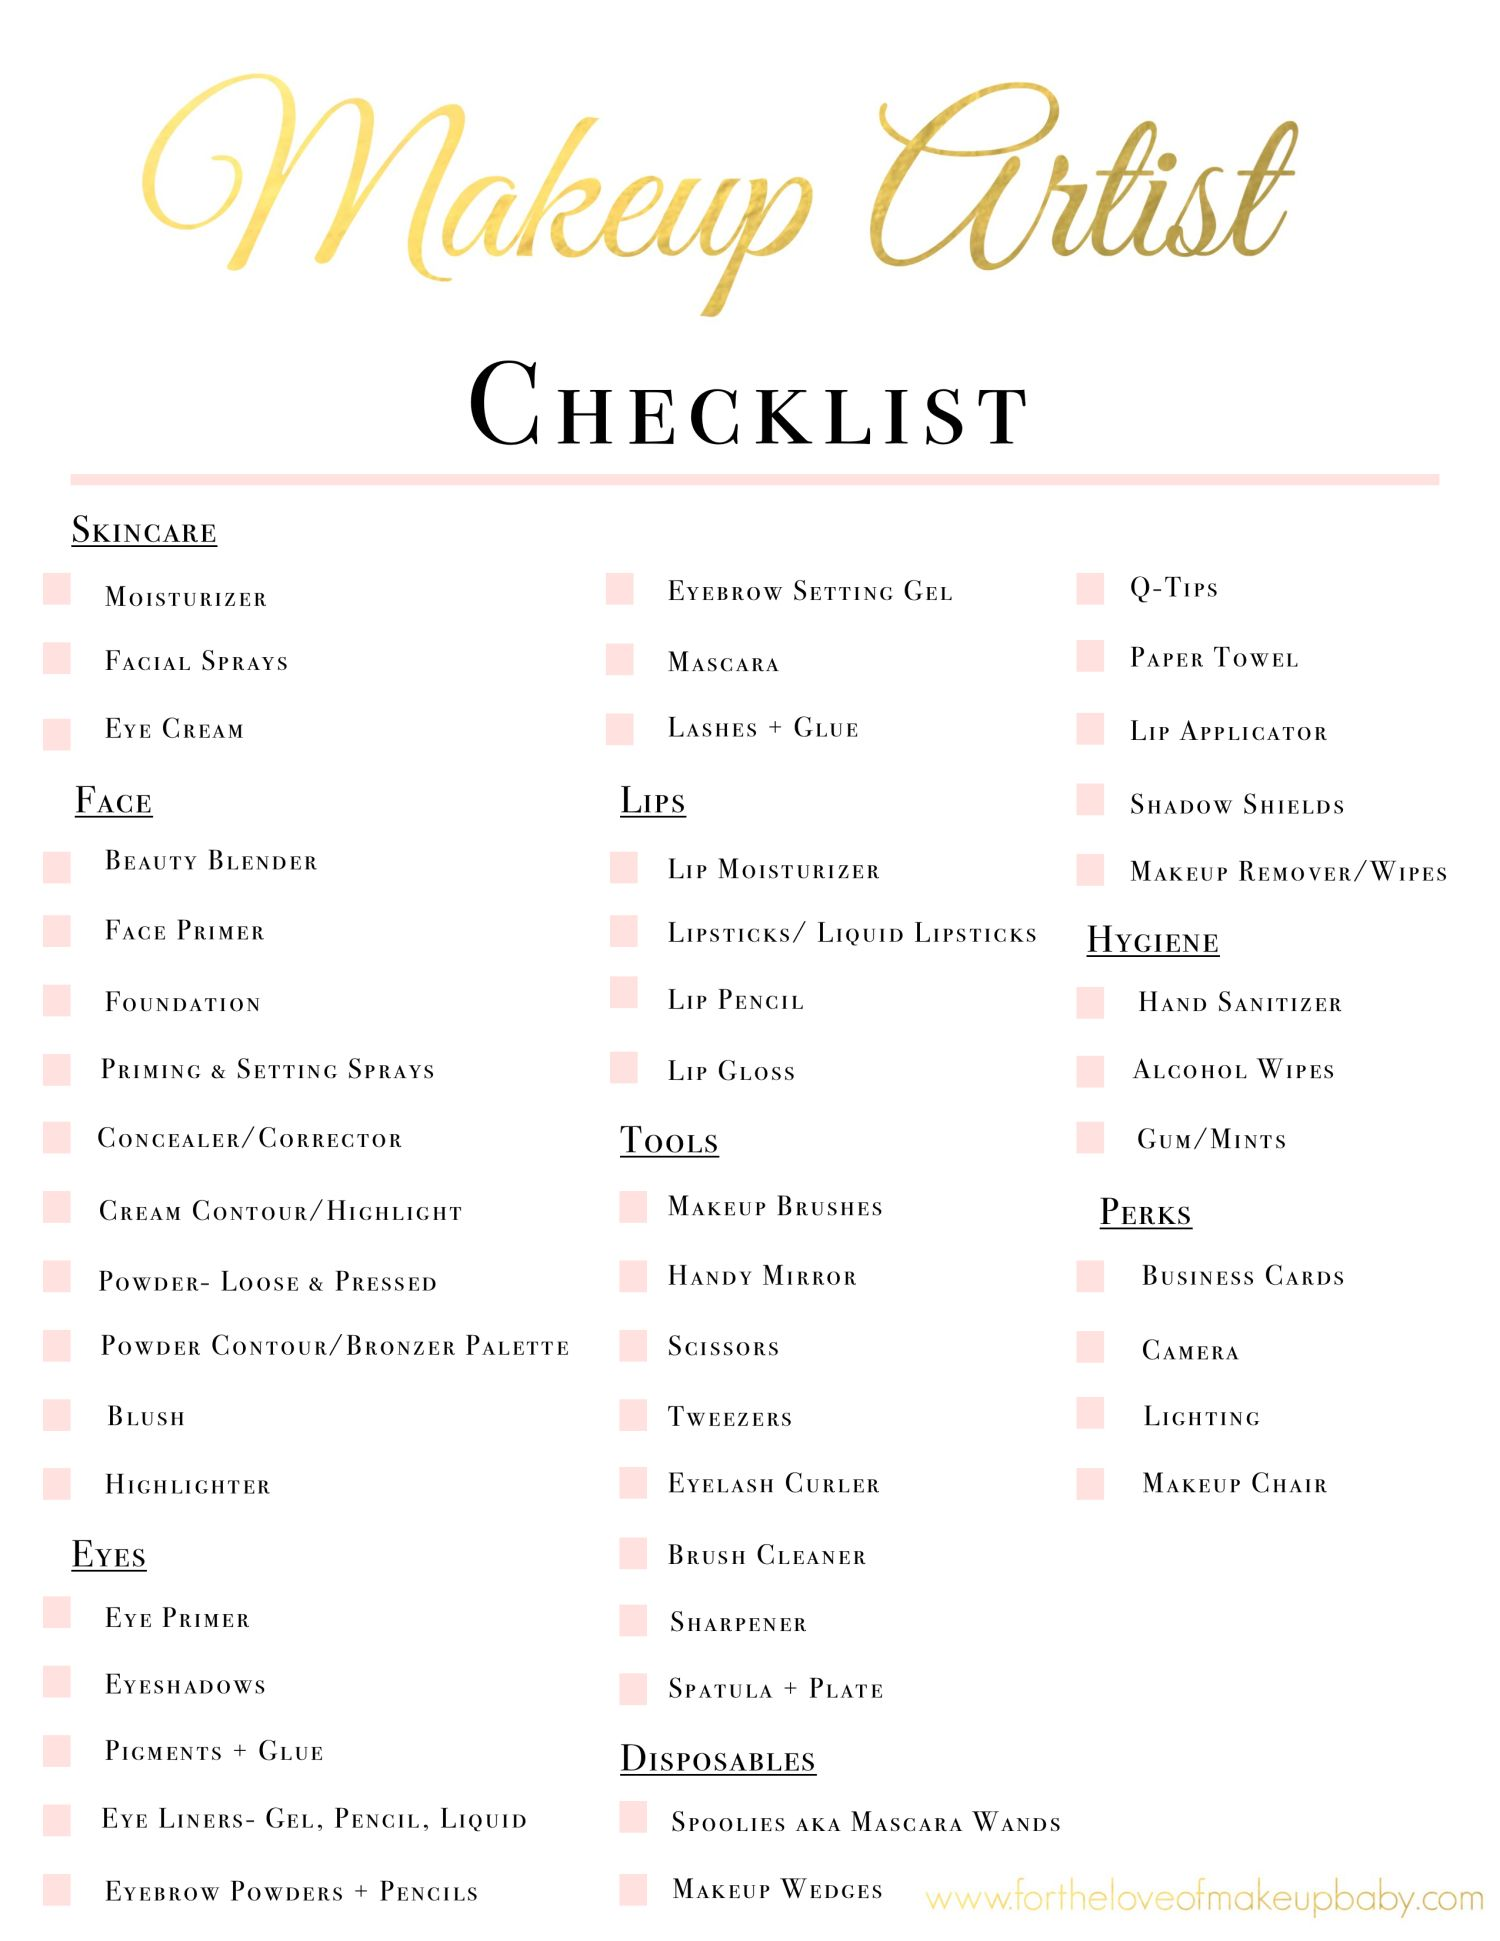 Makeup Artist Kit Checklist  WwwFortheloveofmakeupbabyCom